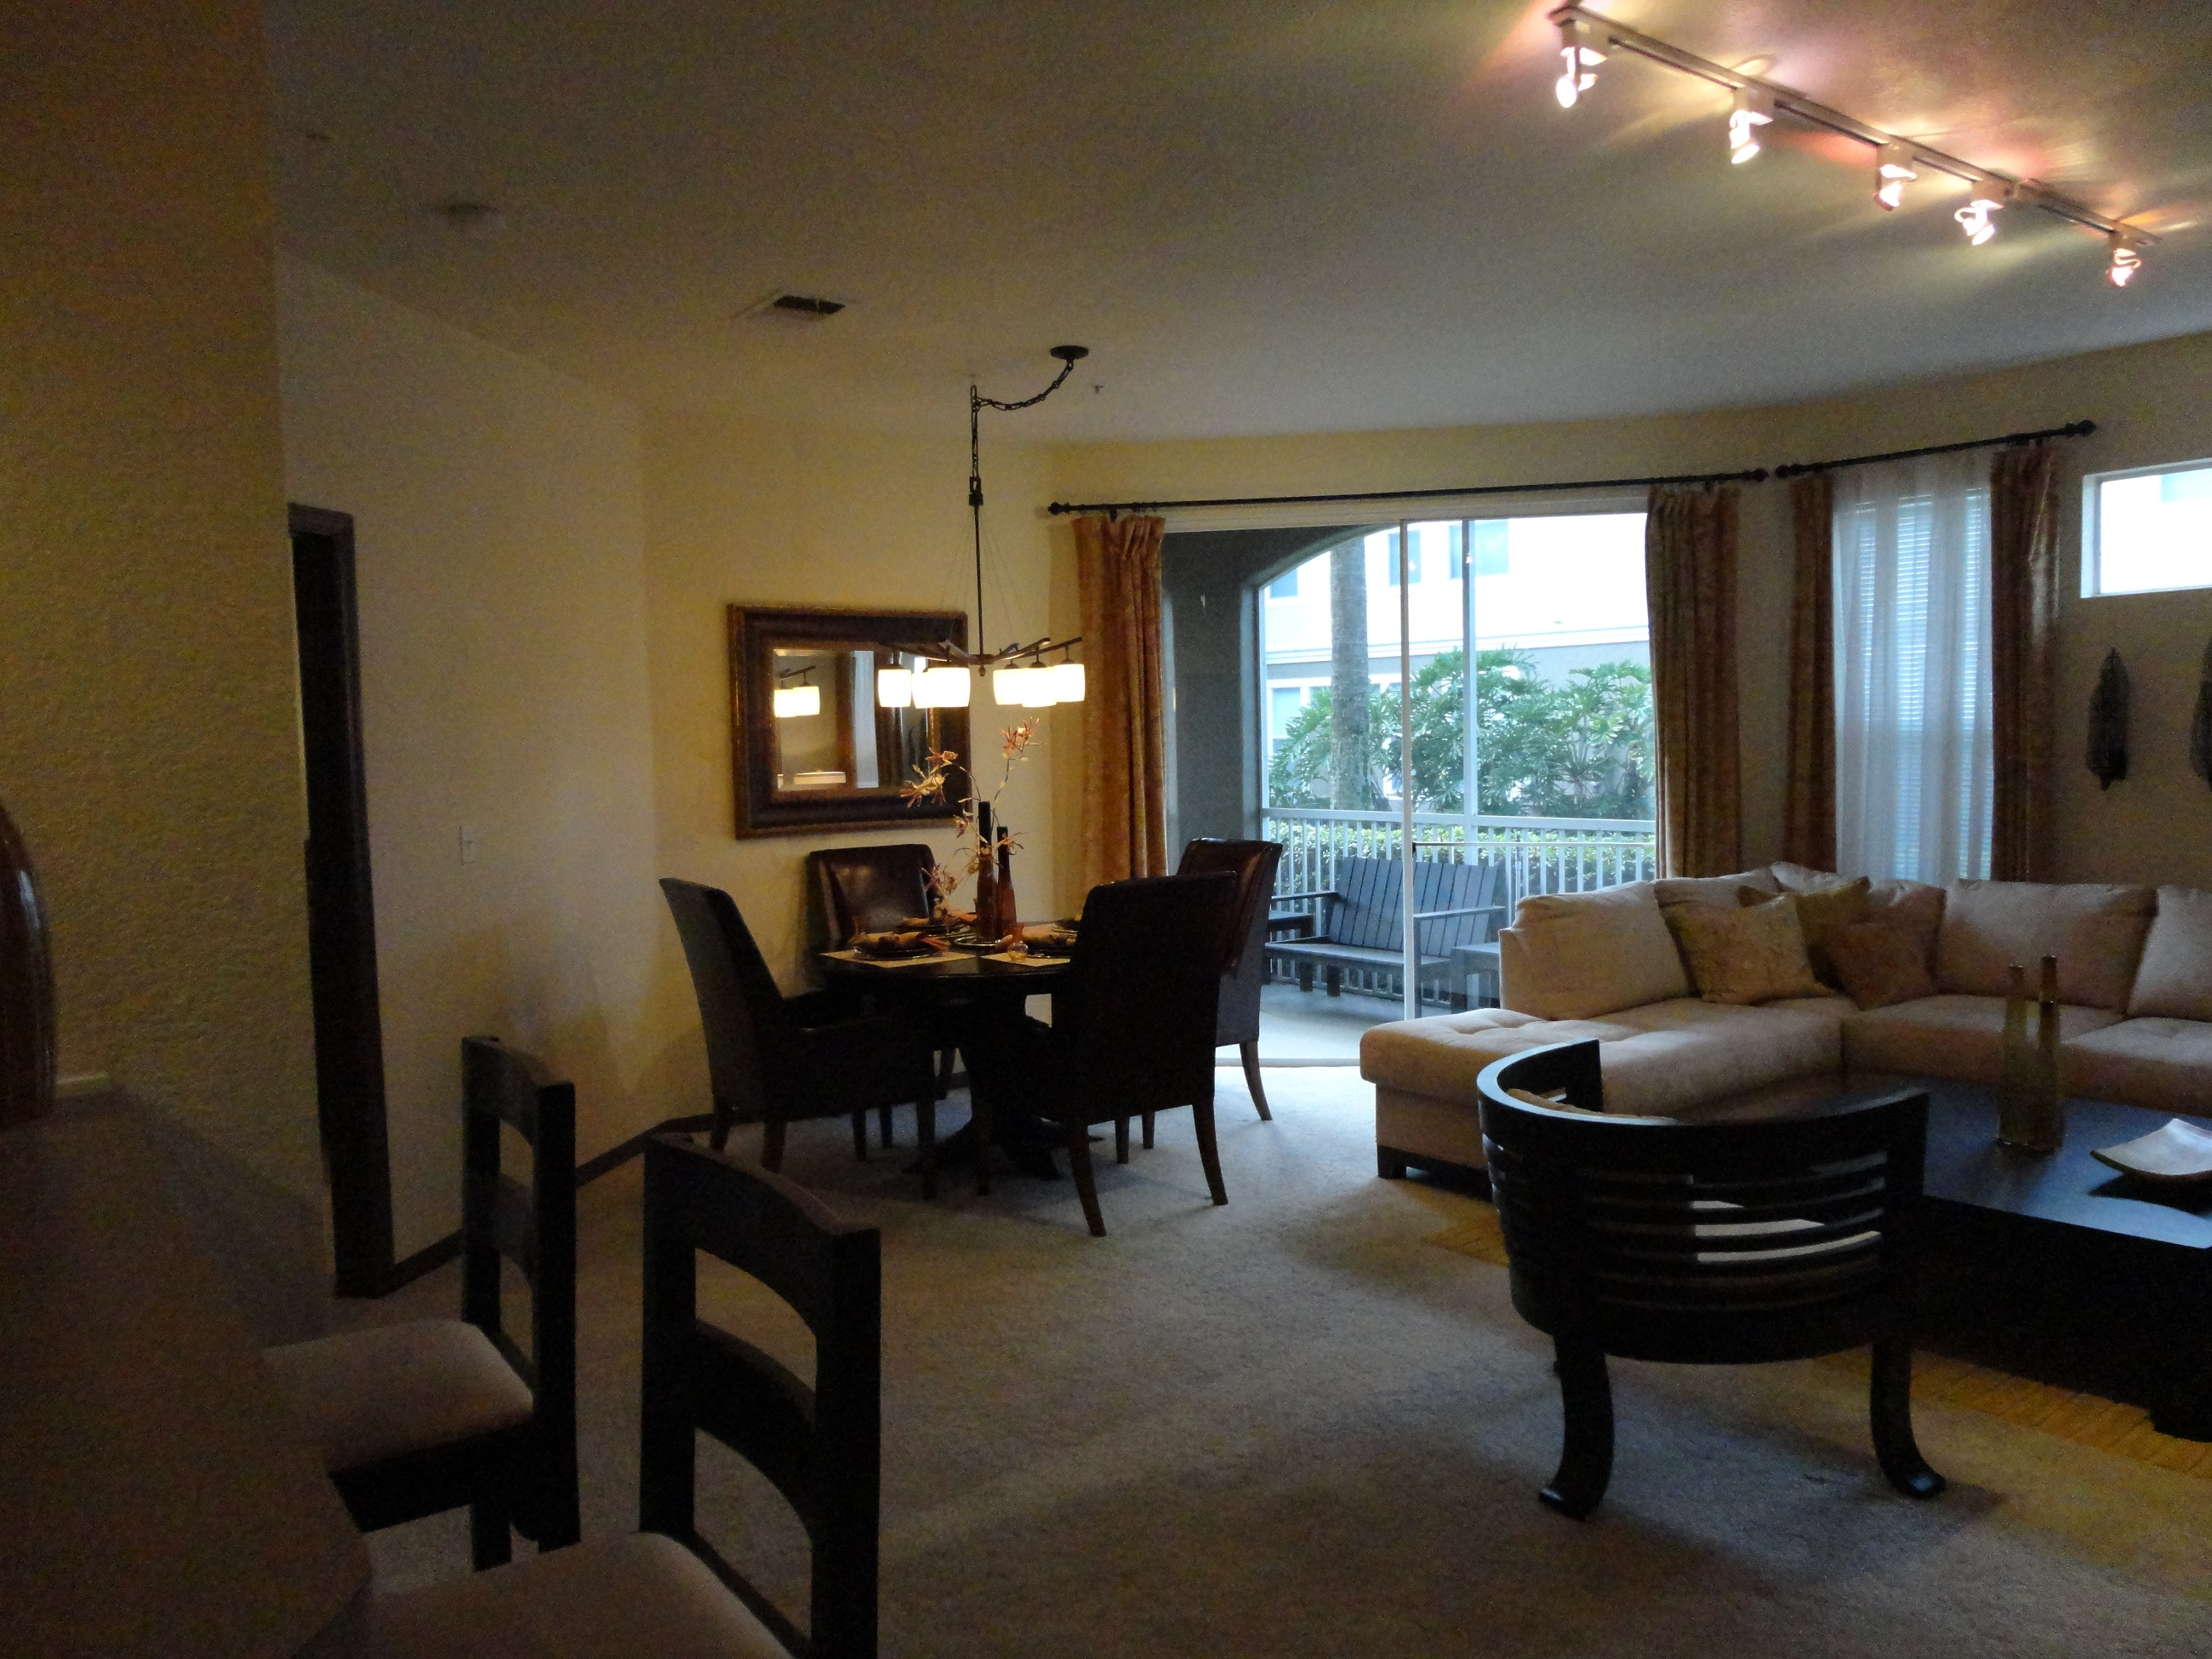 20 Best Apartments In Palm River-Clair Mel, FL (with pics)!